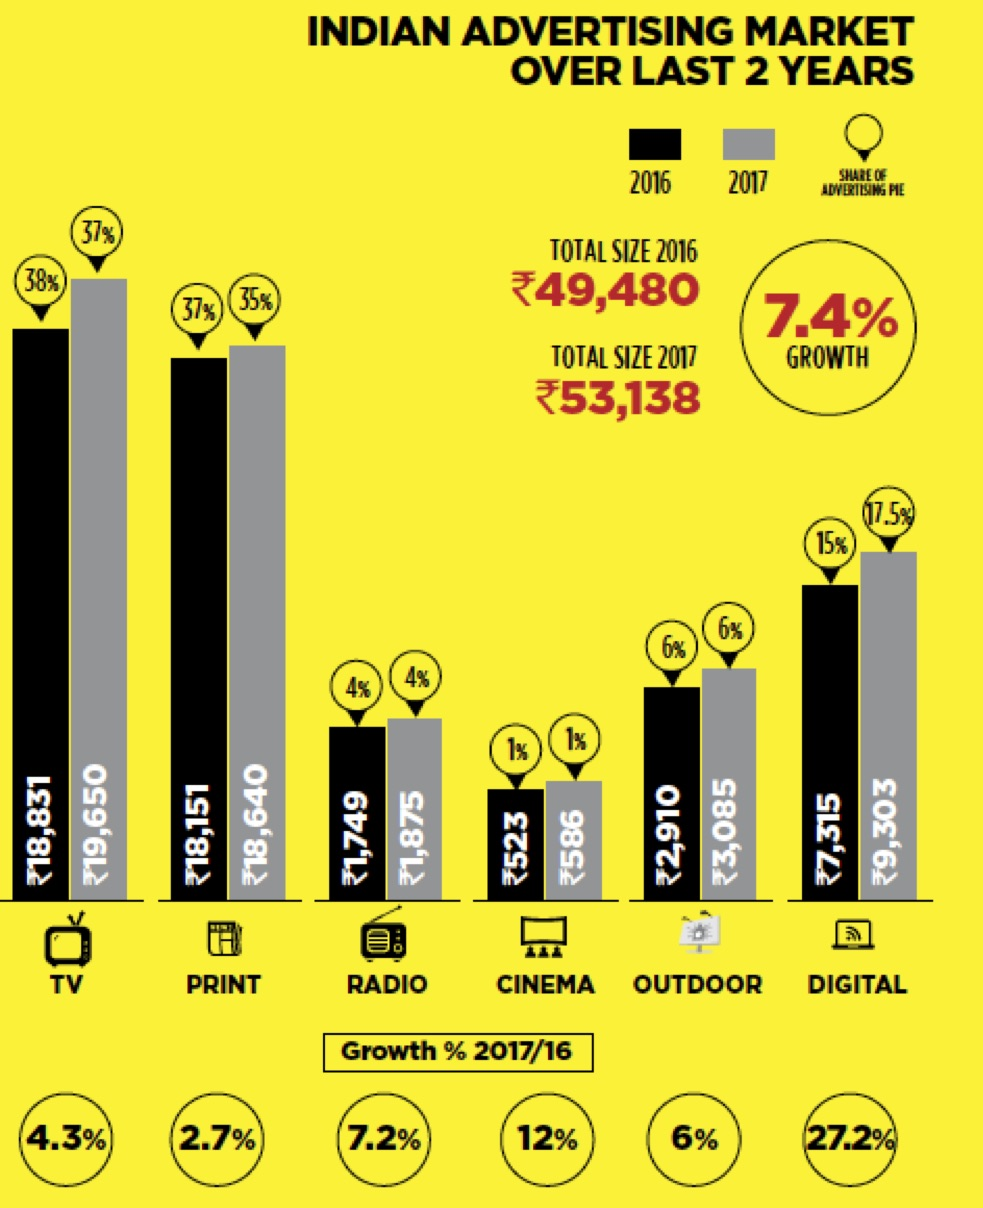 Indian Advertising Market in 2016 and 2017